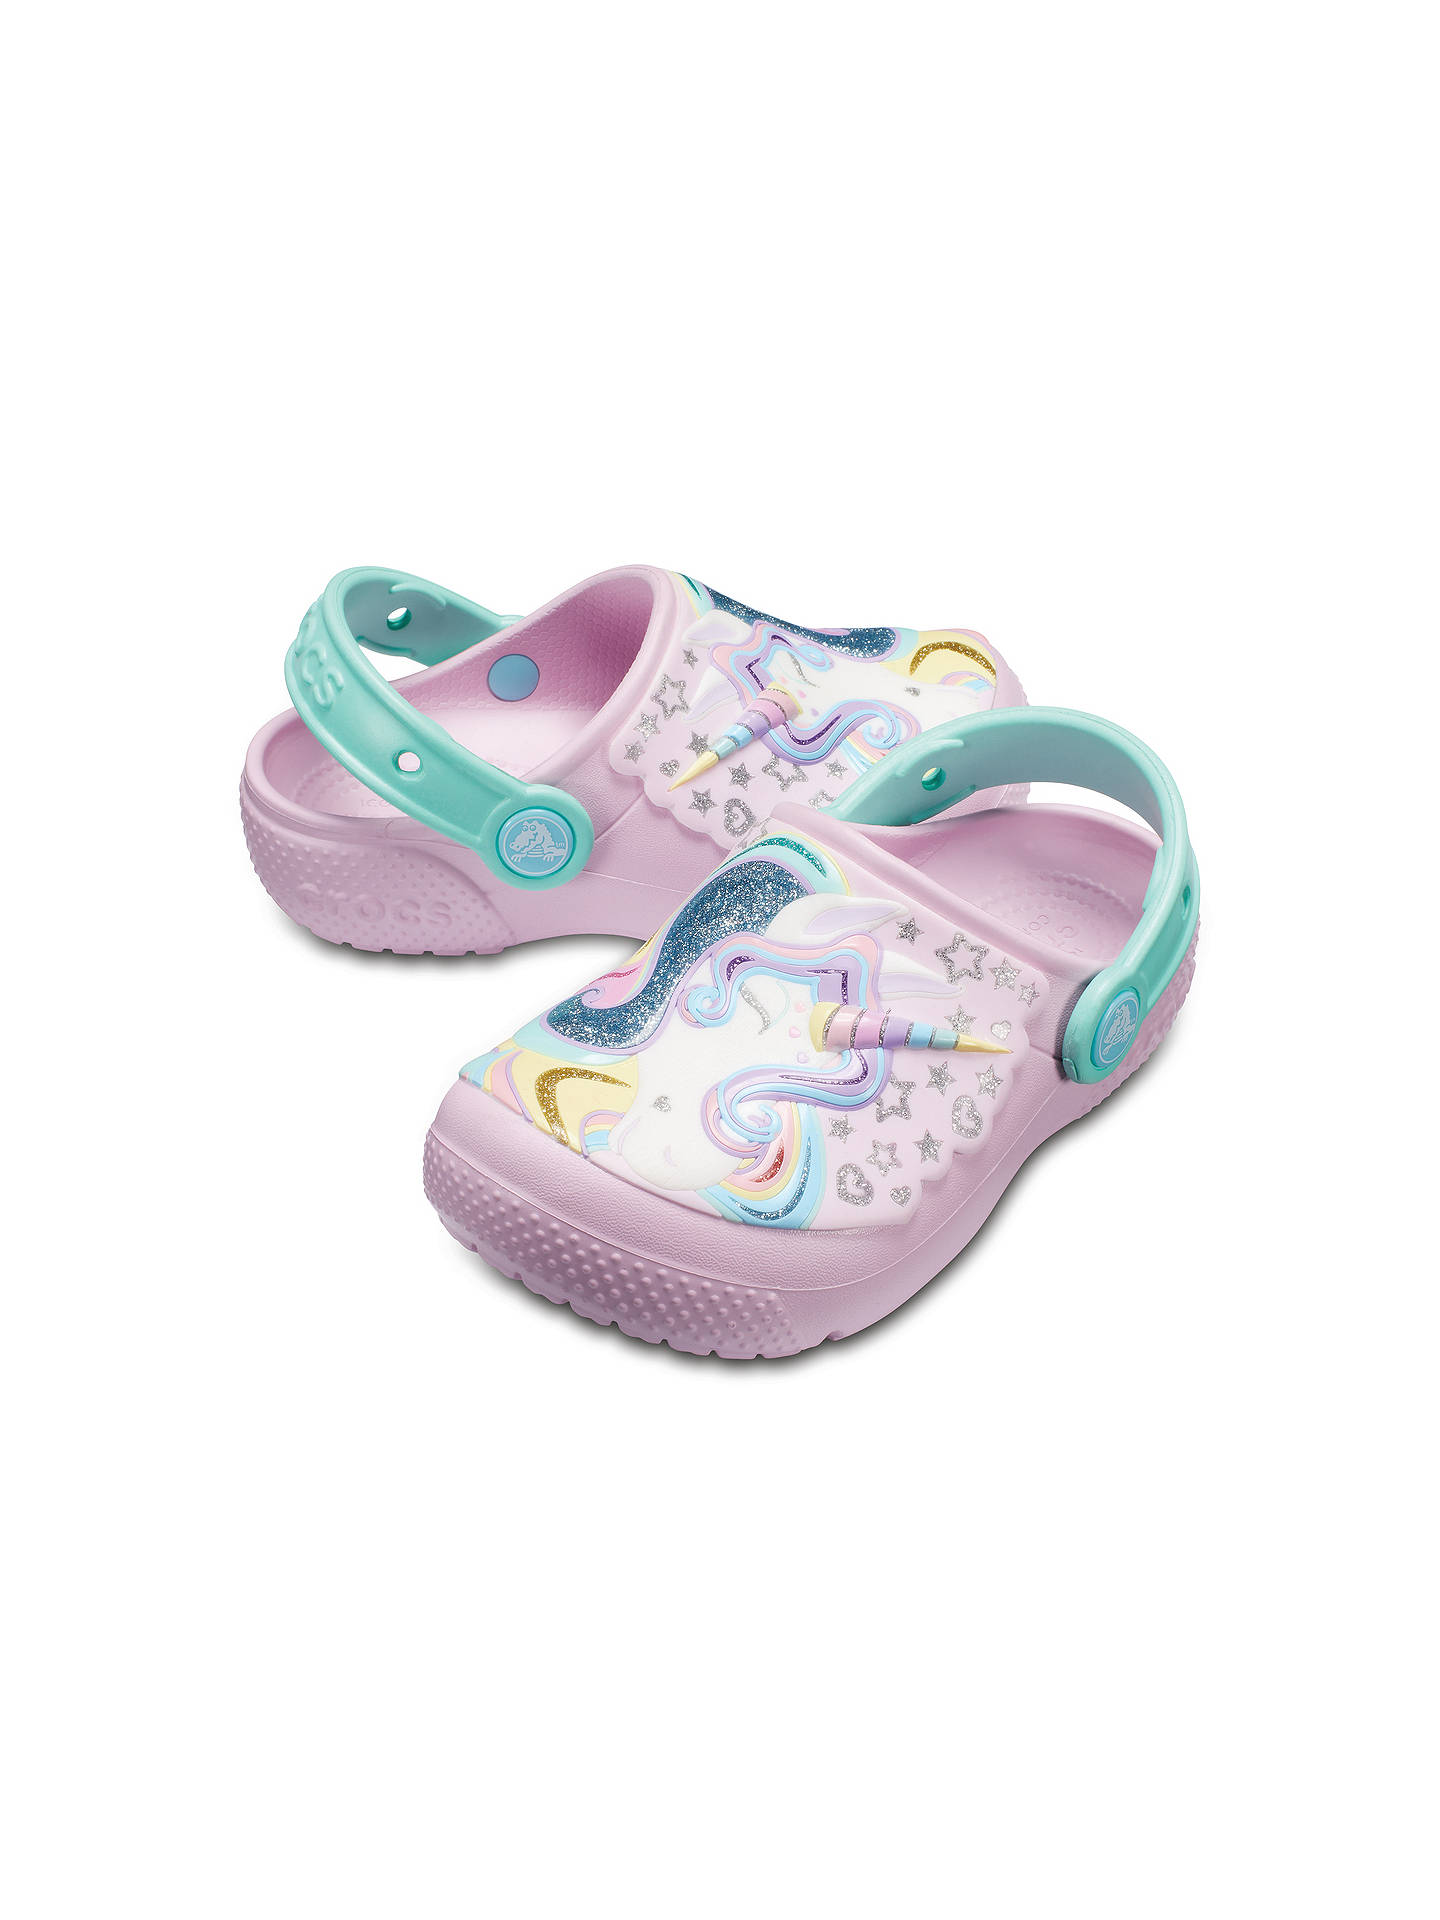 070bd6455 ... Buy Crocs Children s Fun Lab Clogs